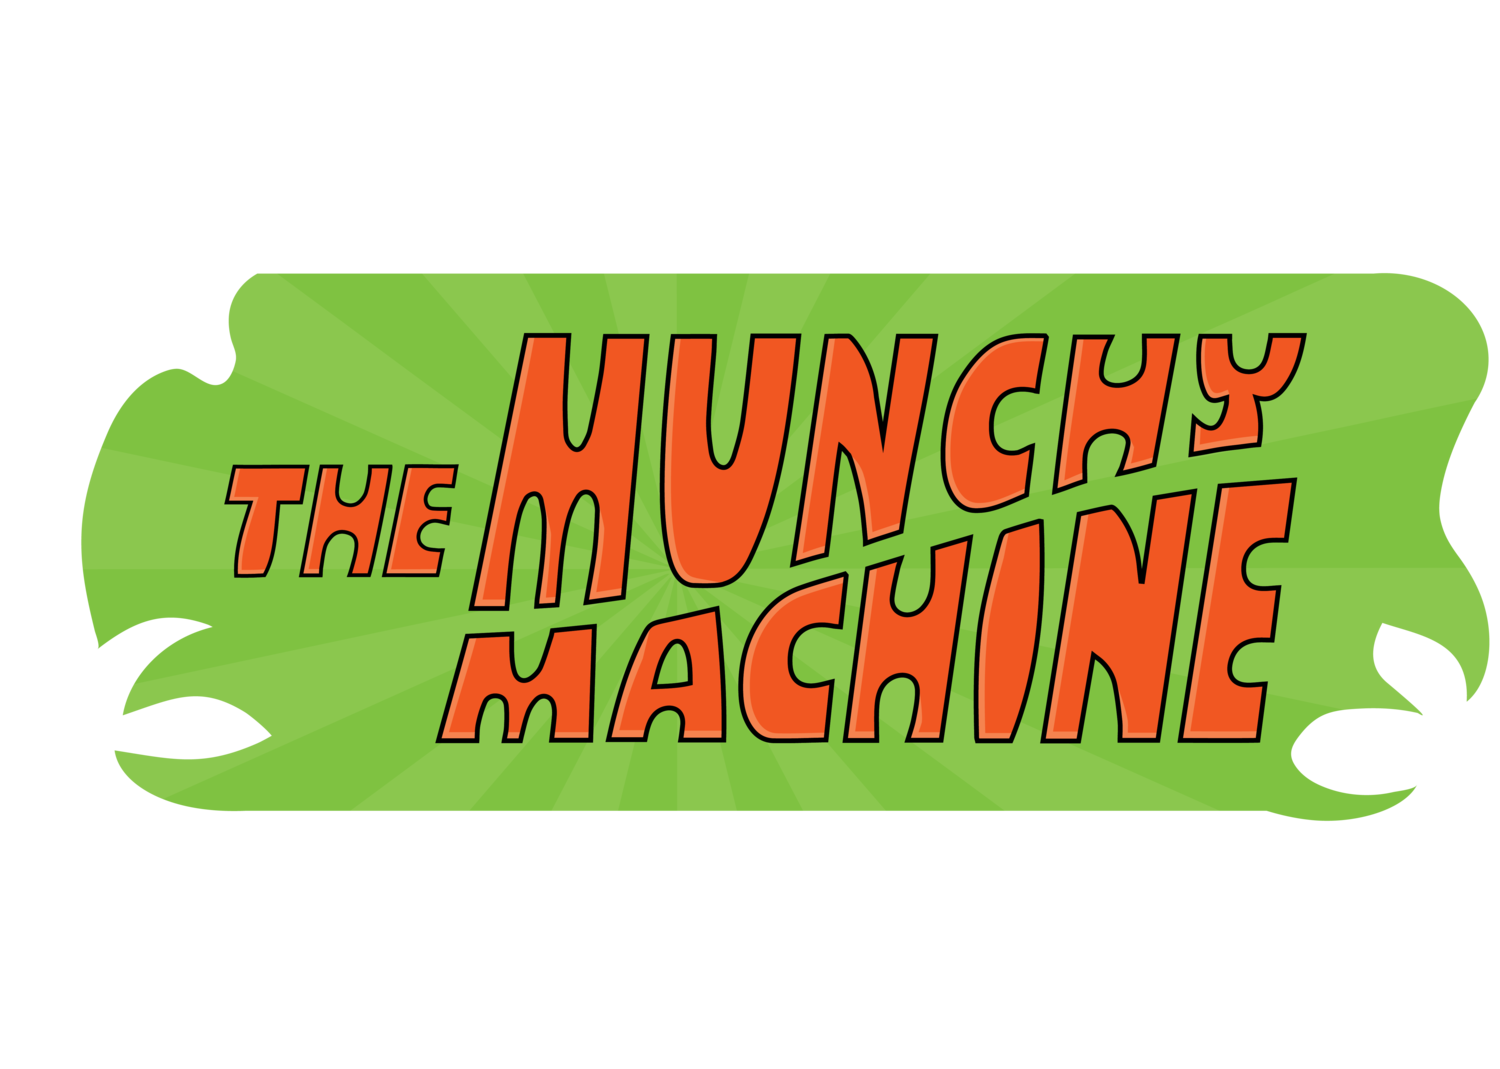 The Munchy Machine